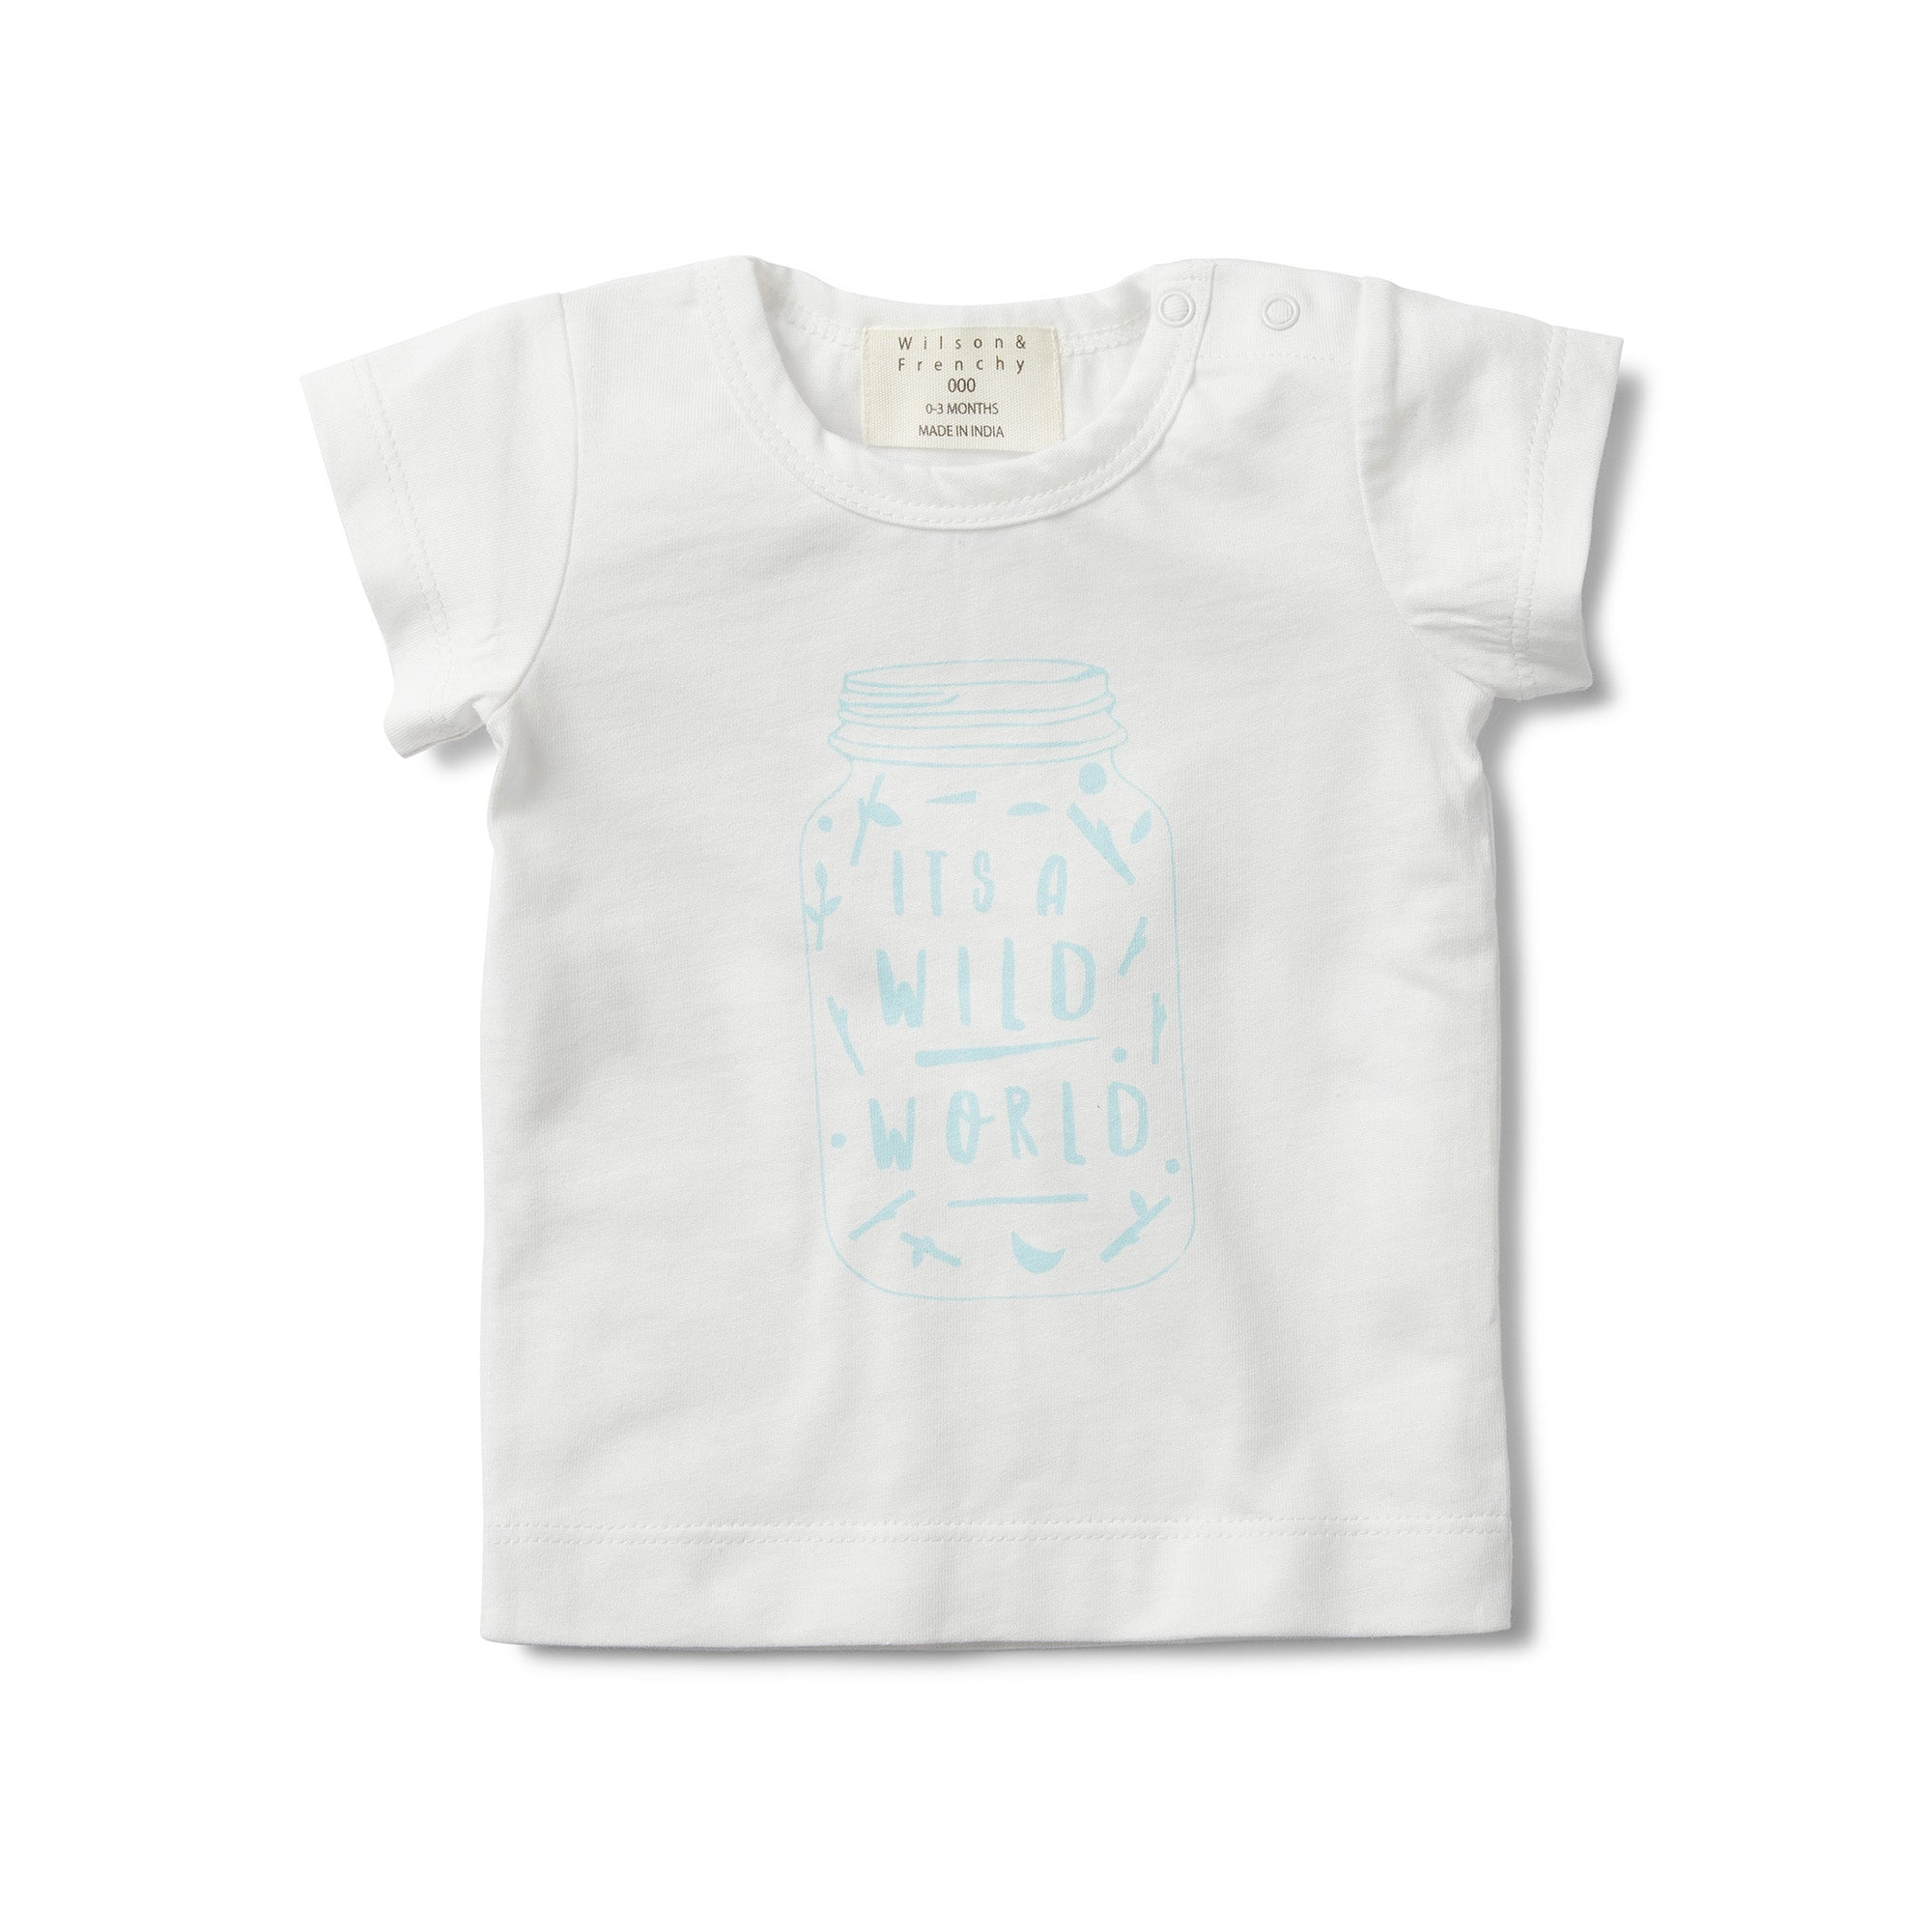 Short Sleeve T-shirt - It's A Wild World Blue